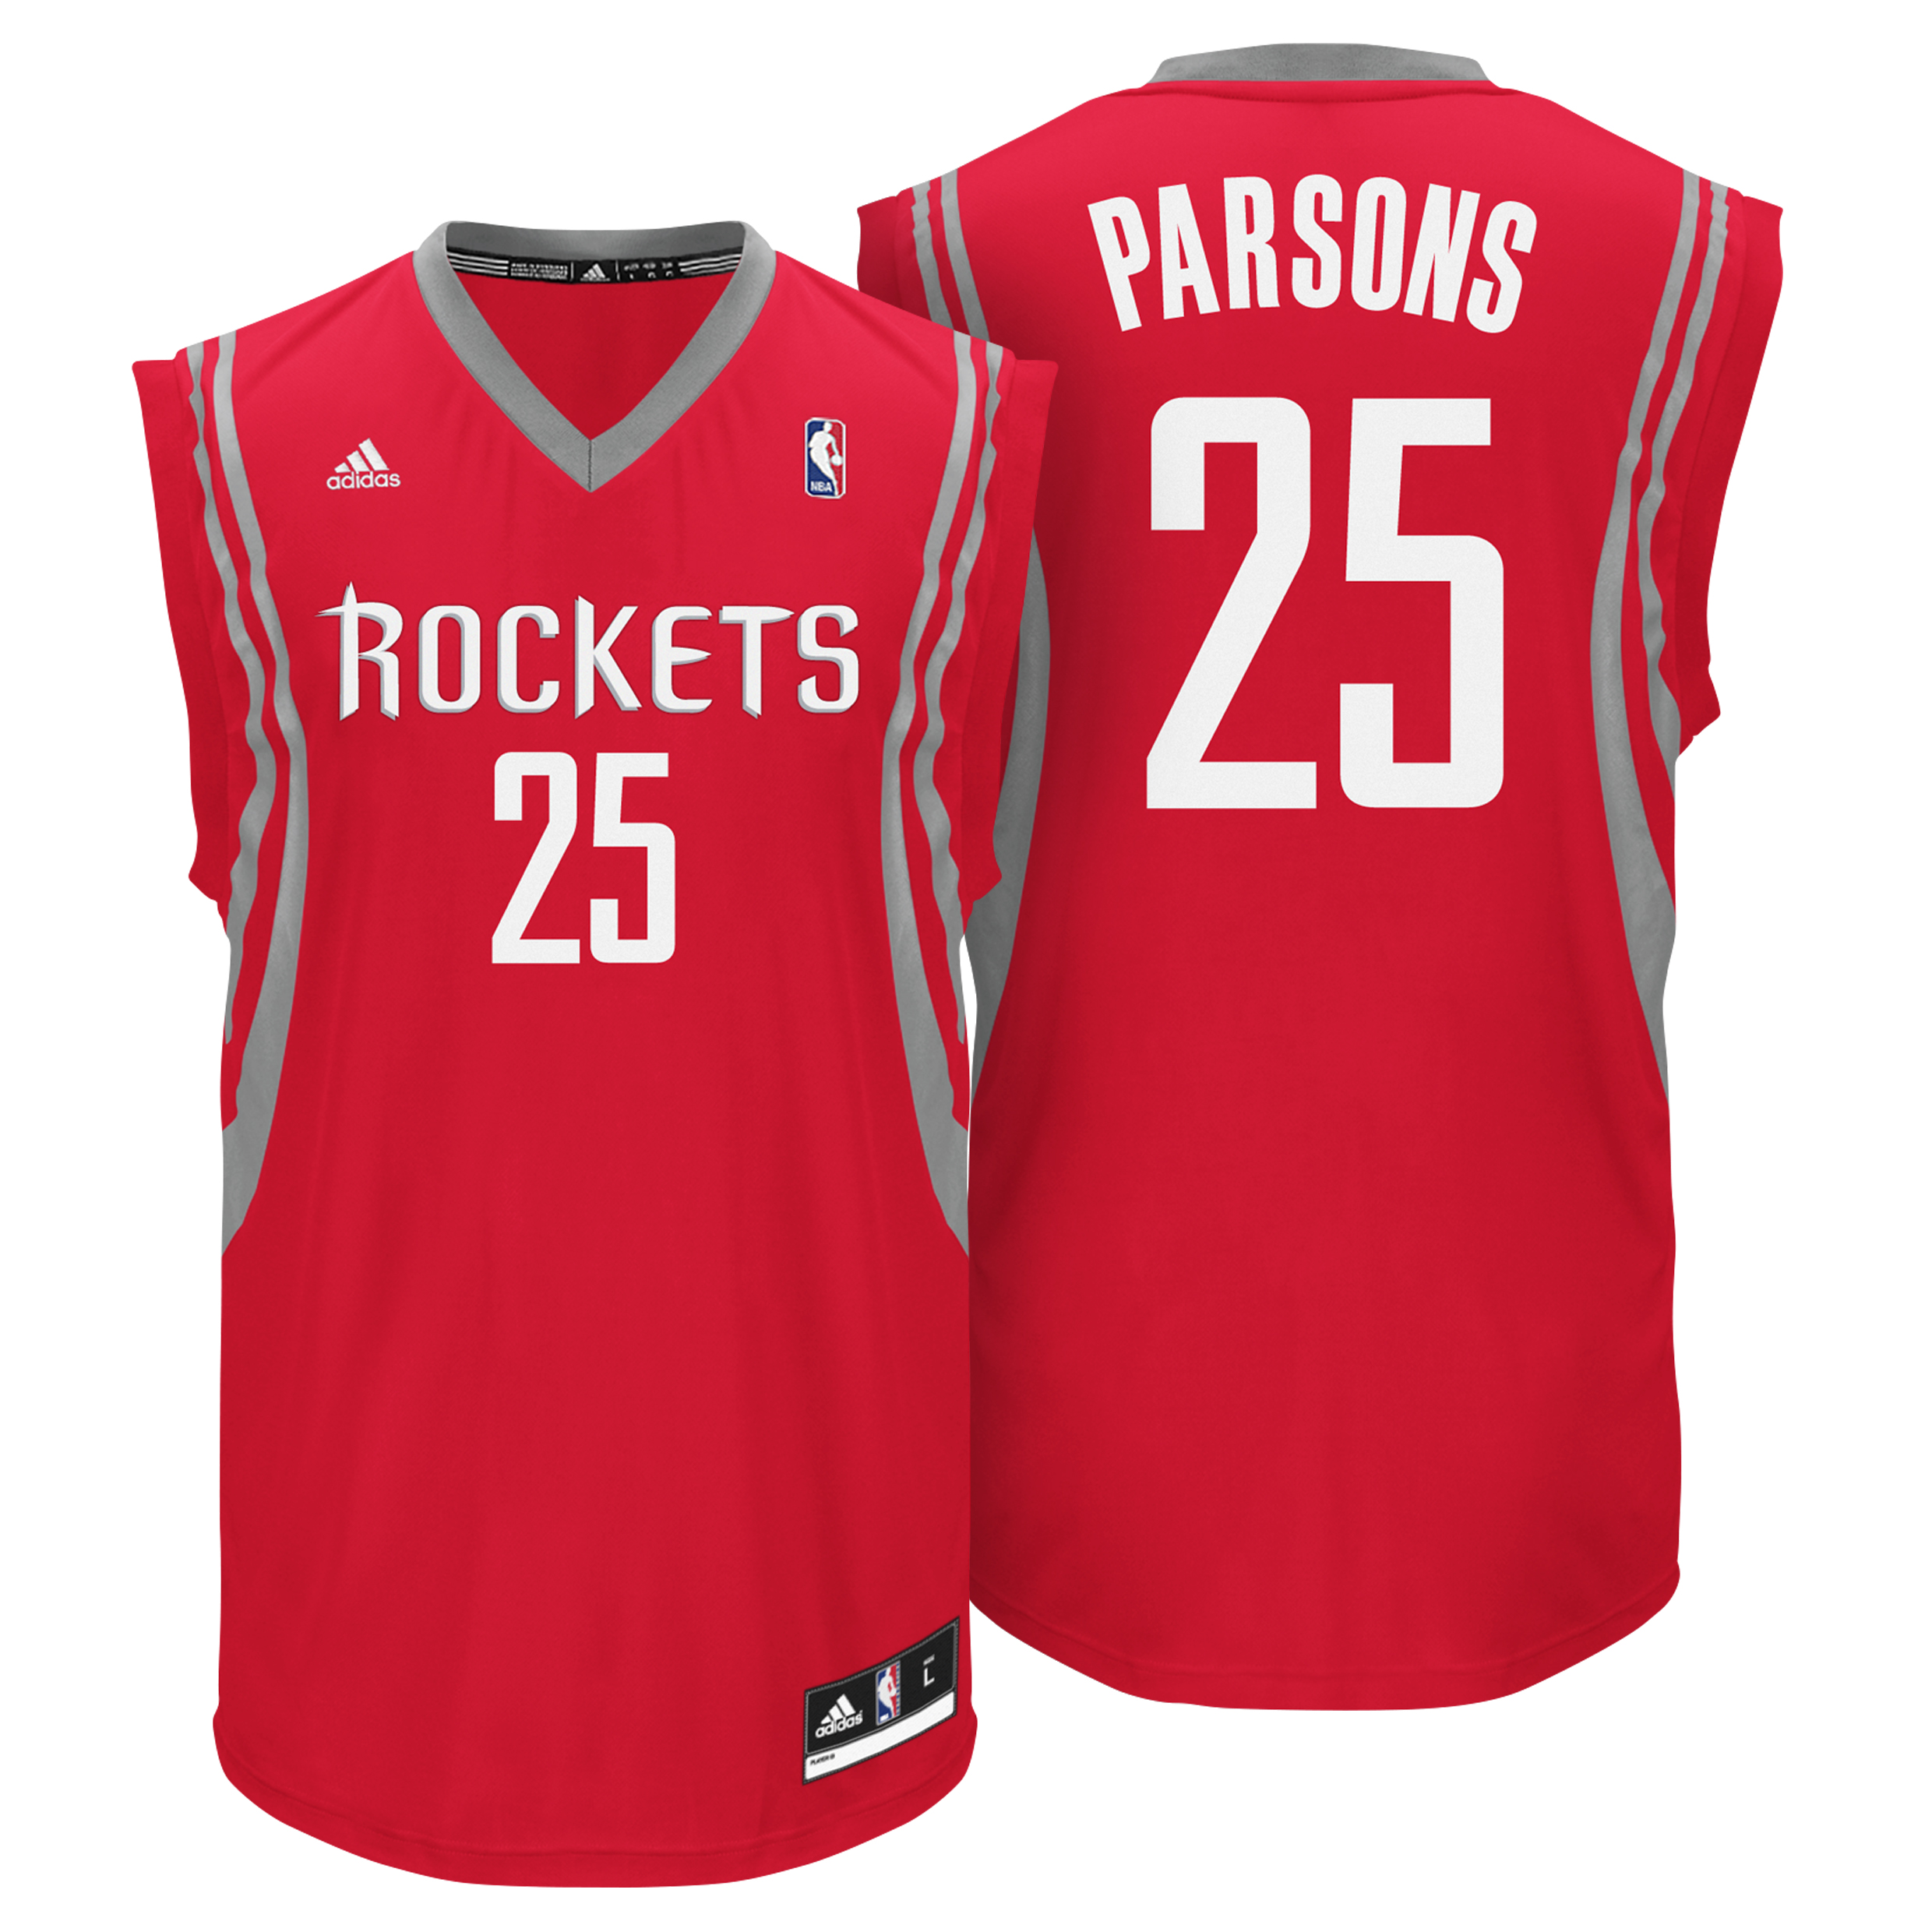 Houston Rockets Road Replica Jersey - Parsons - Mens